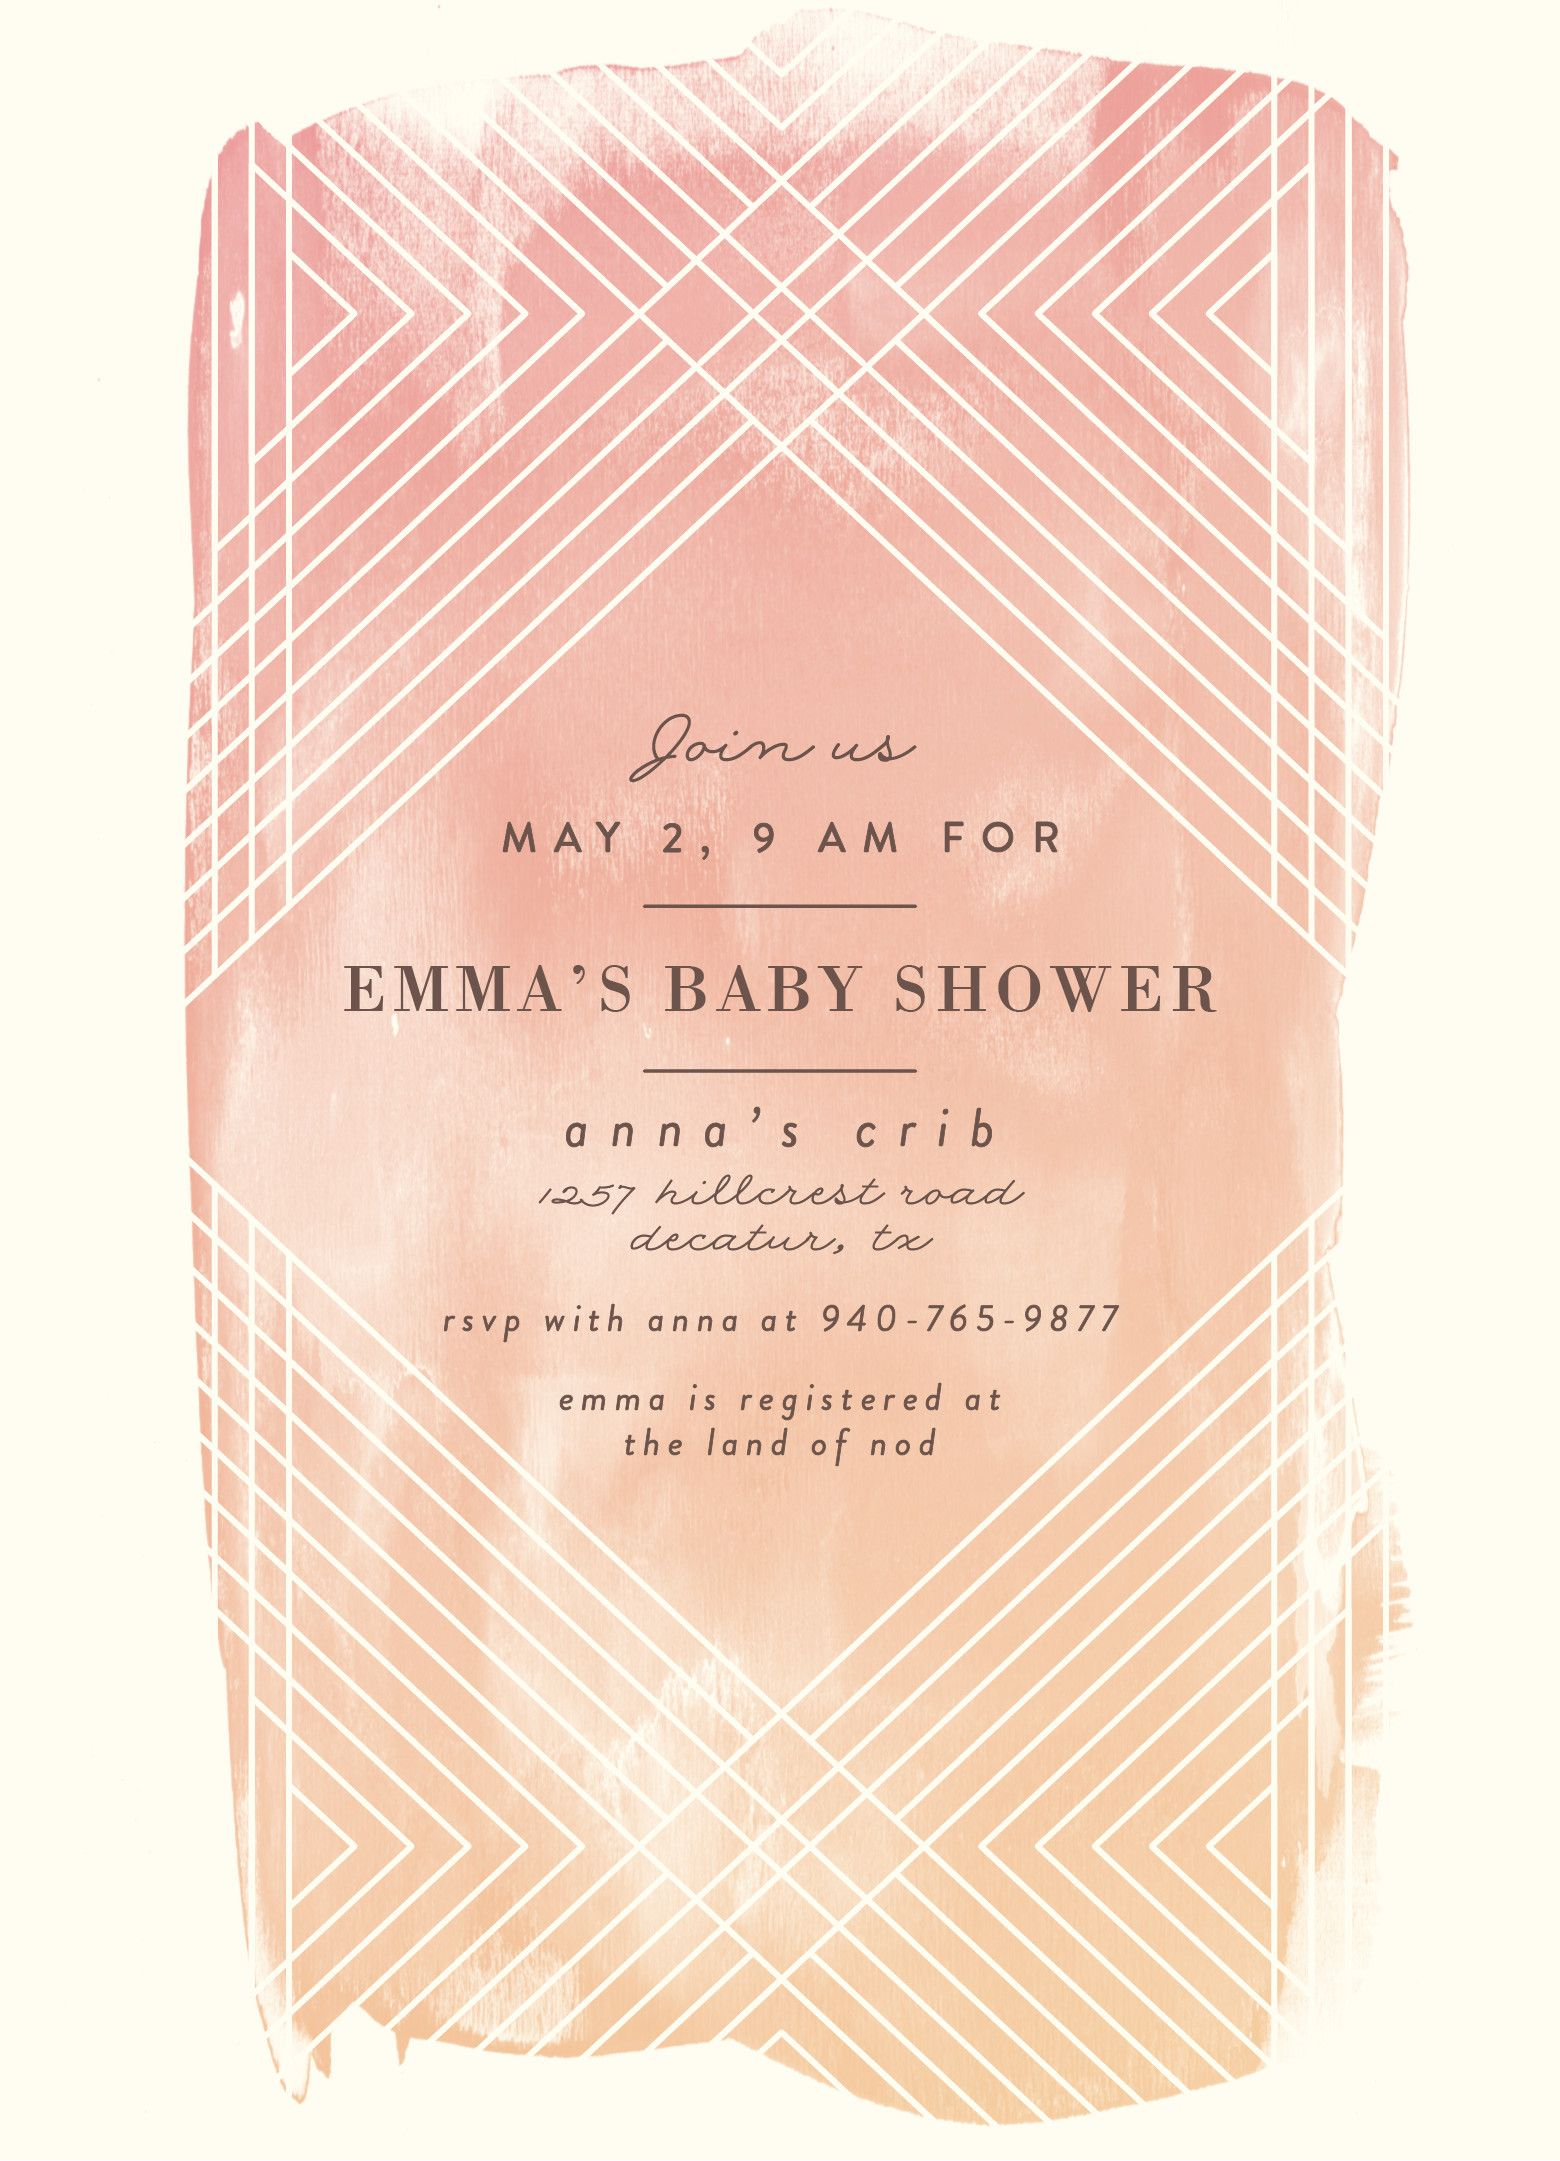 Baby shower invitation A watercolor wash over a masked geometric